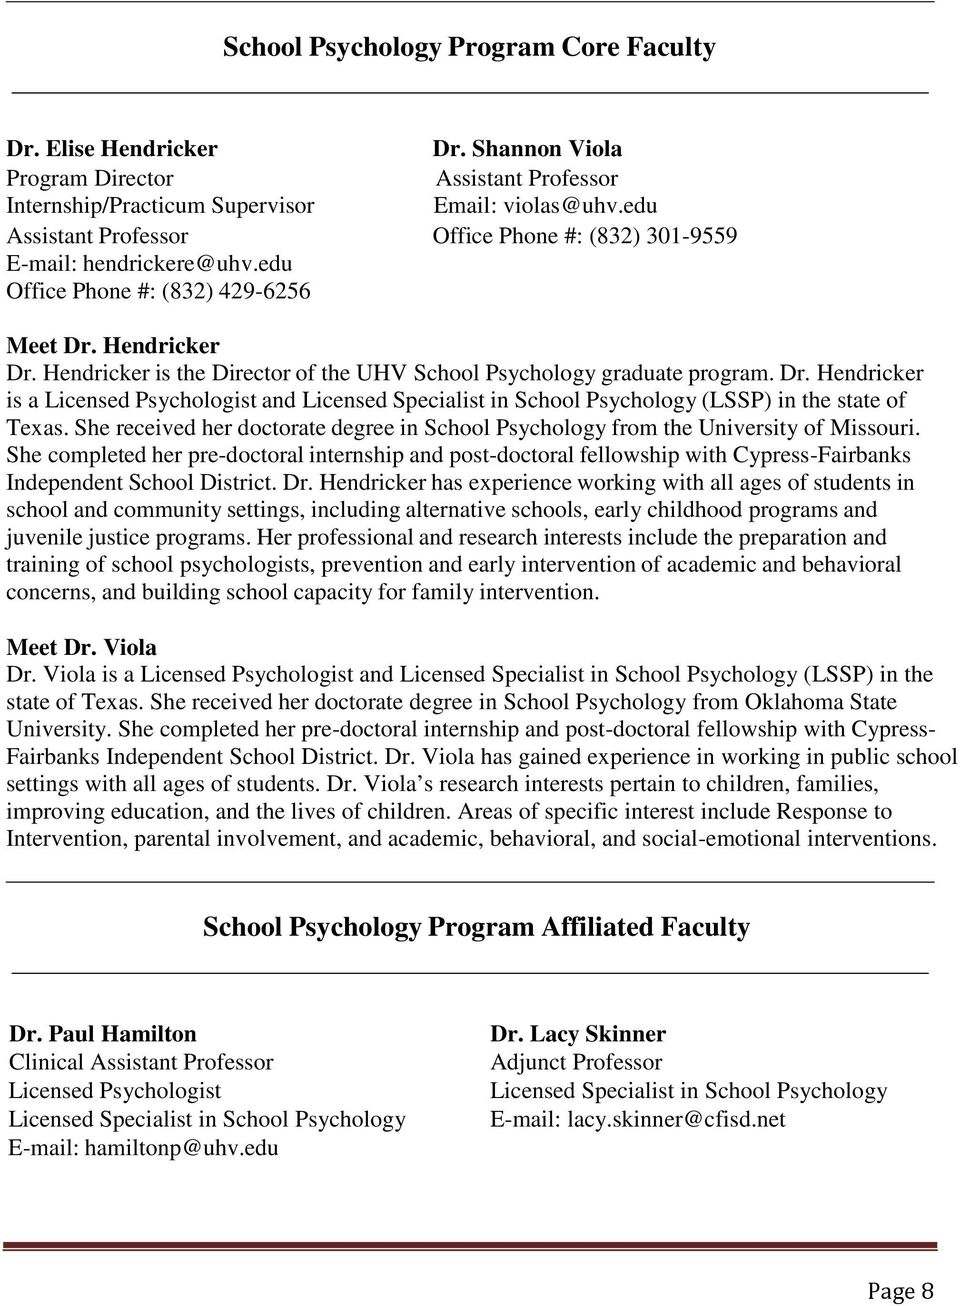 Hendricker is the Director of the UHV School Psychology graduate program. Dr. Hendricker is a Licensed Psychologist and Licensed Specialist in School Psychology (LSSP) in the state of Texas.